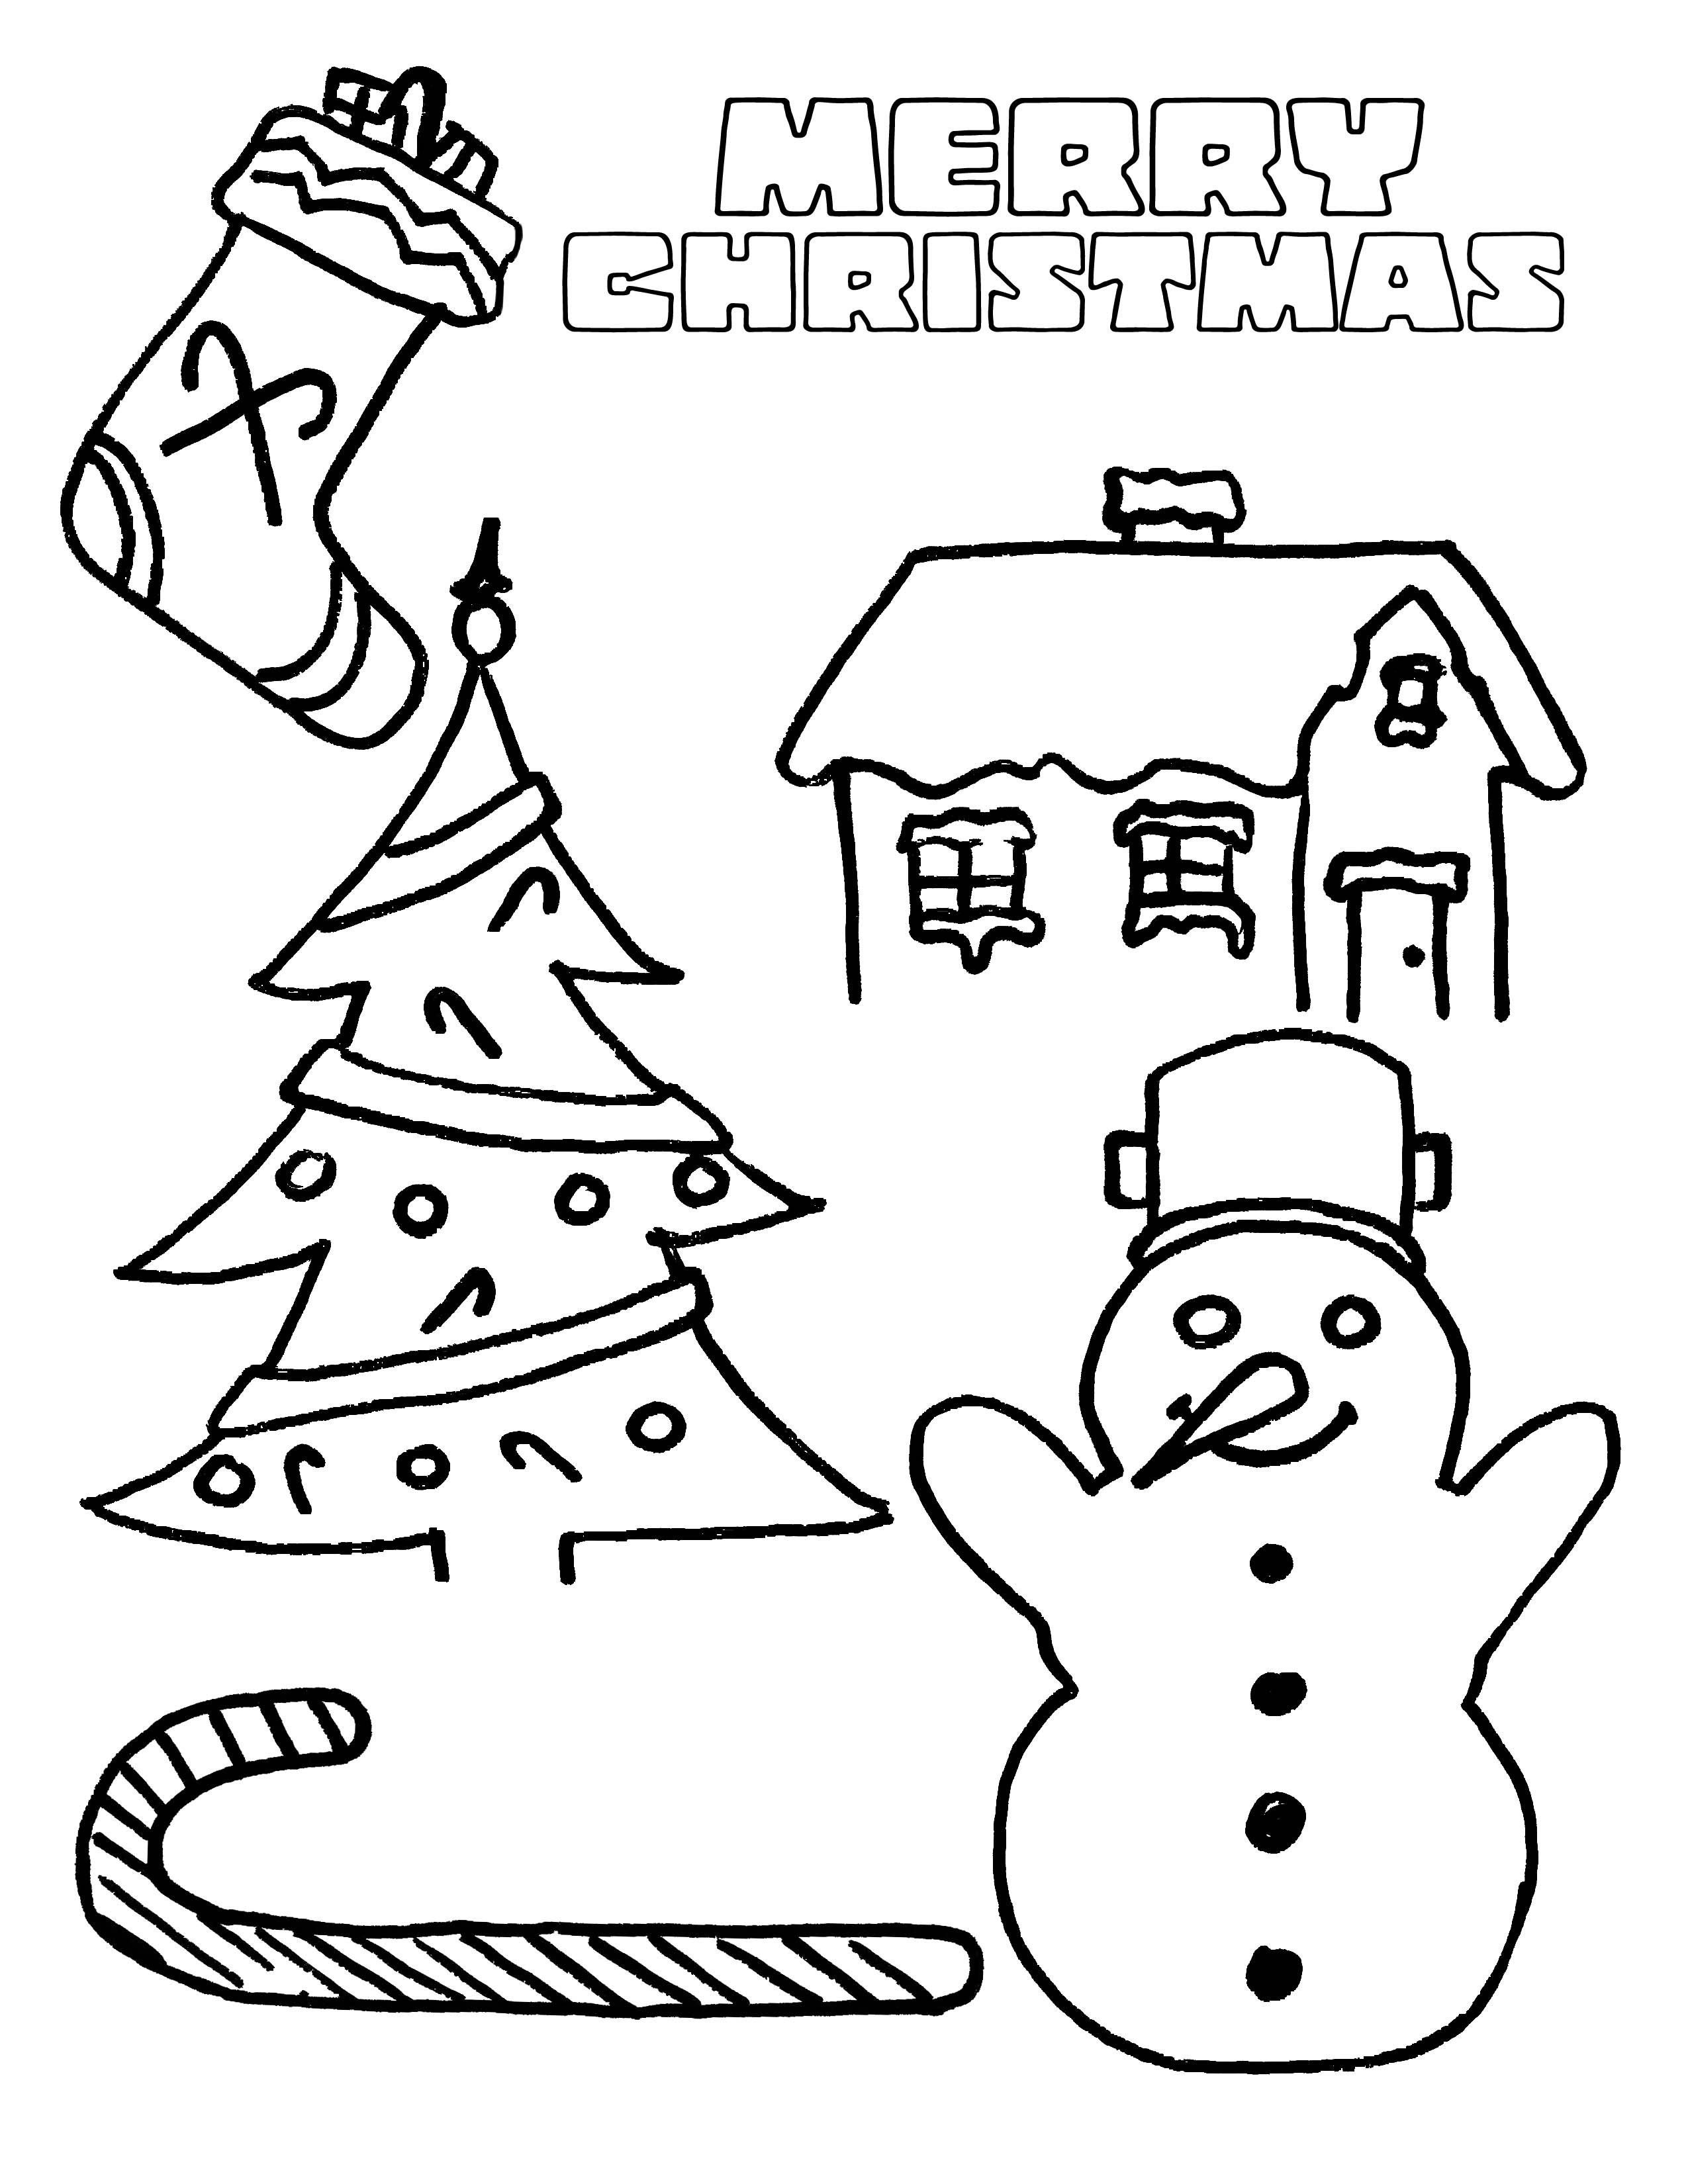 Christmas In July Coloring Sheets With Party Simplicity Free Page For Kids